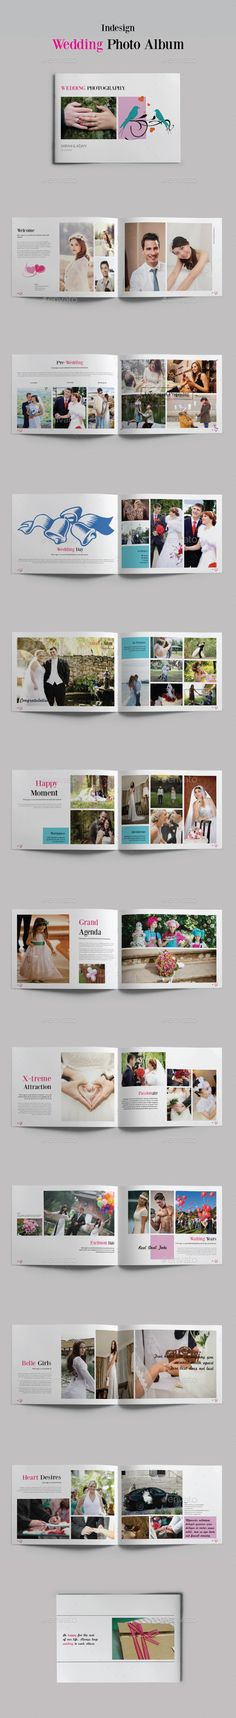 A4 Wedding Photo Al Template Design Http Graphicriver